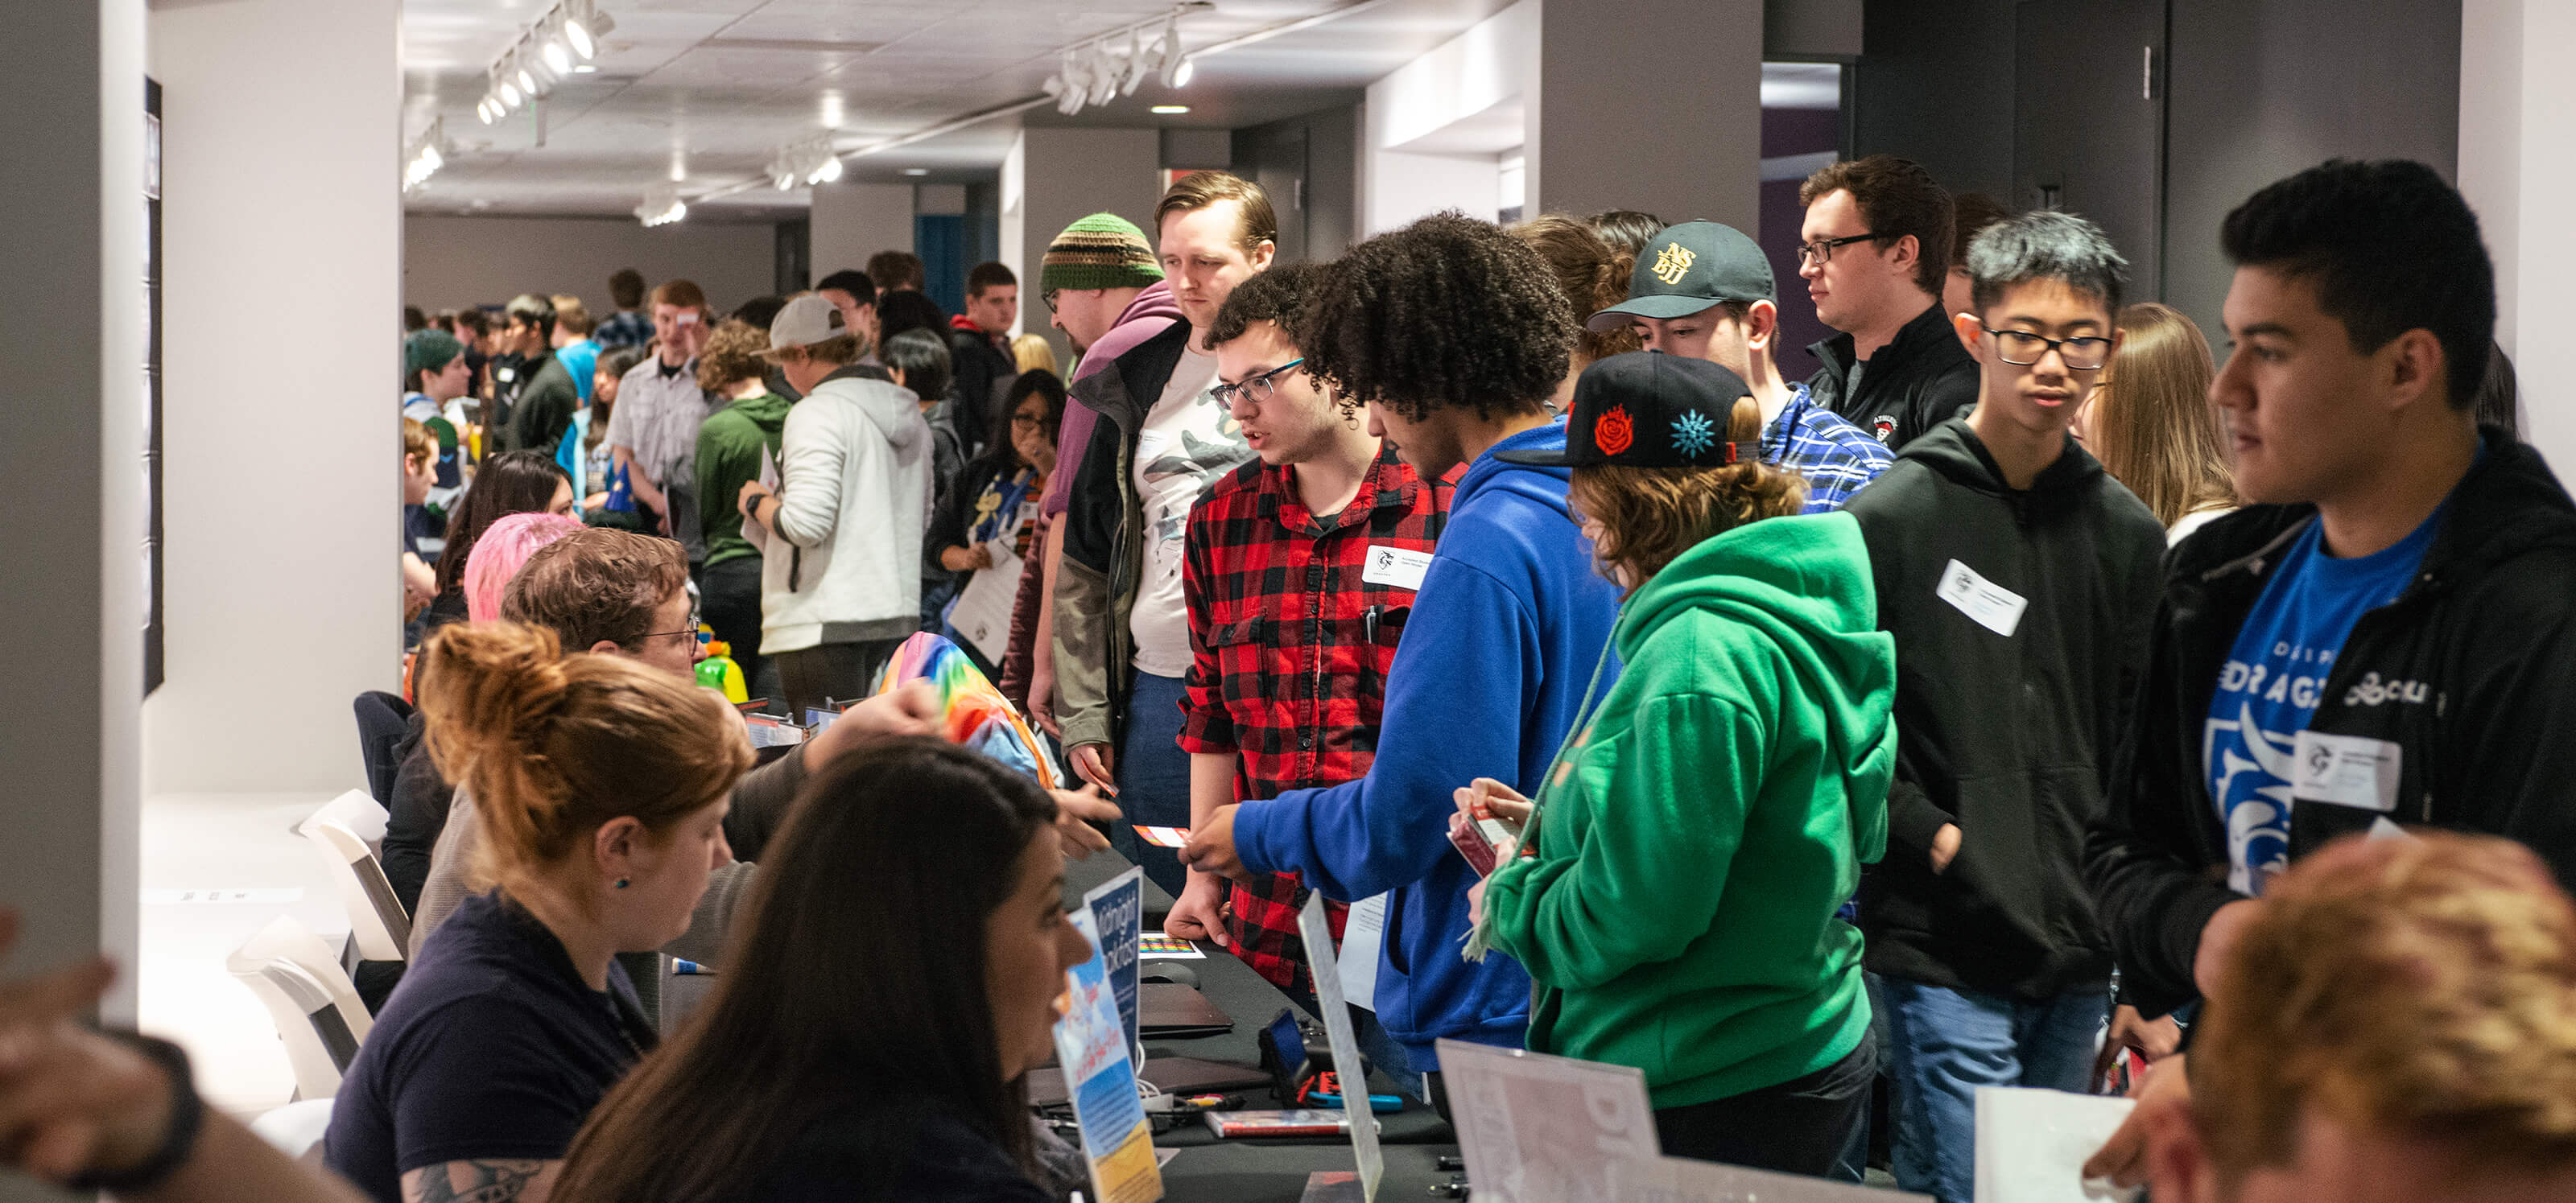 Students gather for the annual DigiPen Club Fair